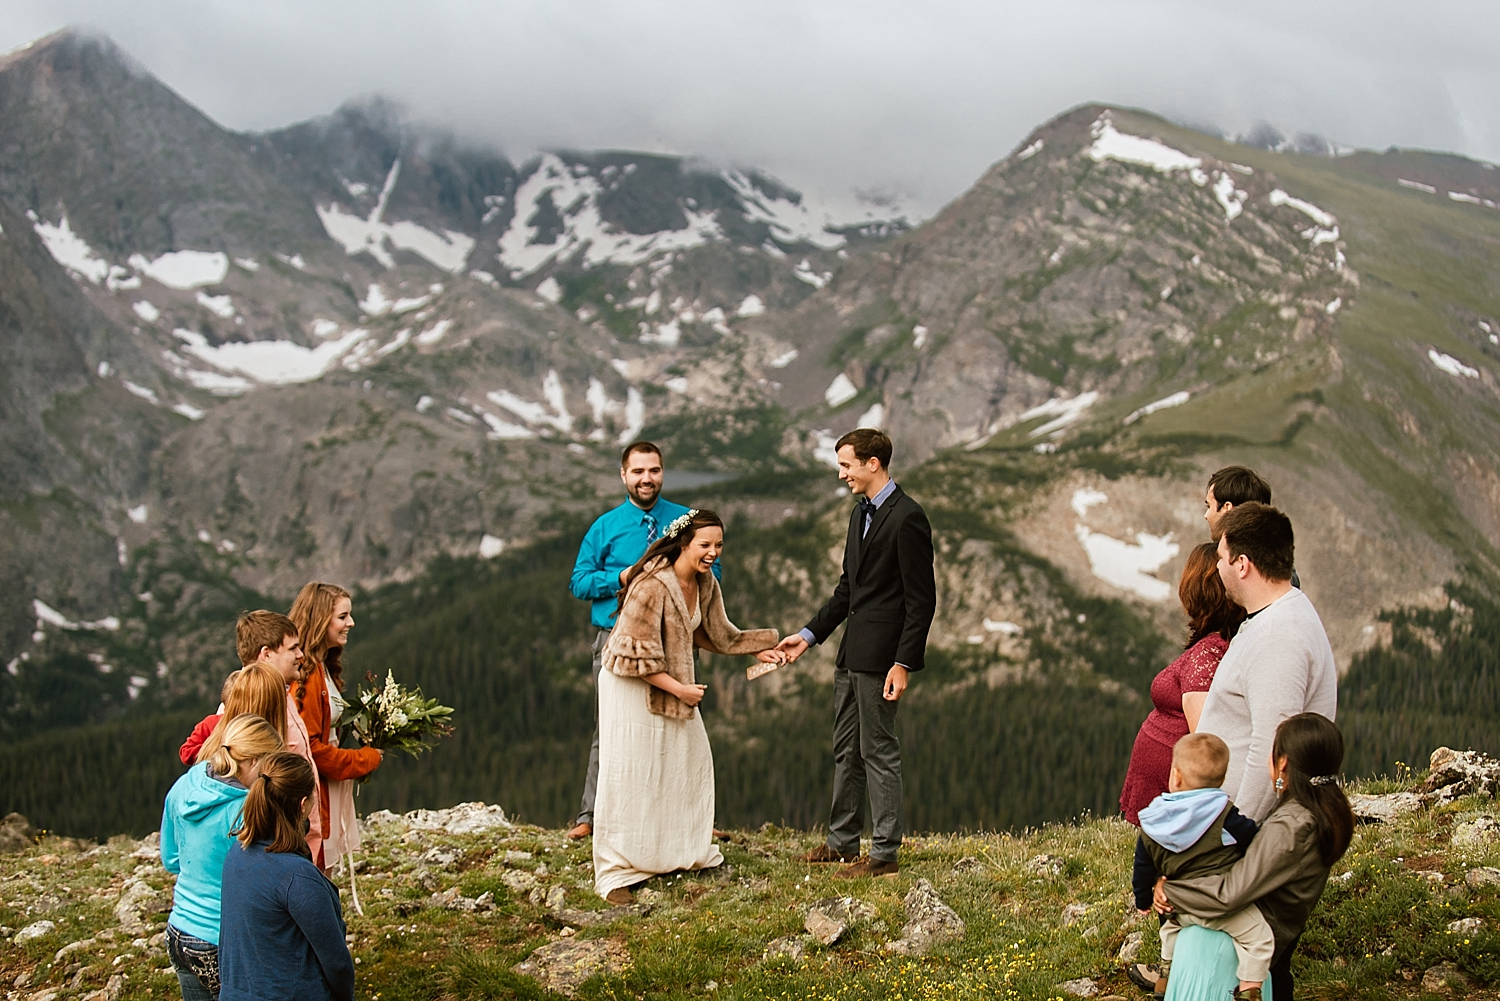 I love intimate weddings and small elopements like Jessica and Edward's! I can't wait for my Colorado wedding in Estes Park! | Trail Ridge Road elopement photos by Rocky Mountain National Park adventure wedding photographer, Maddie Mae.